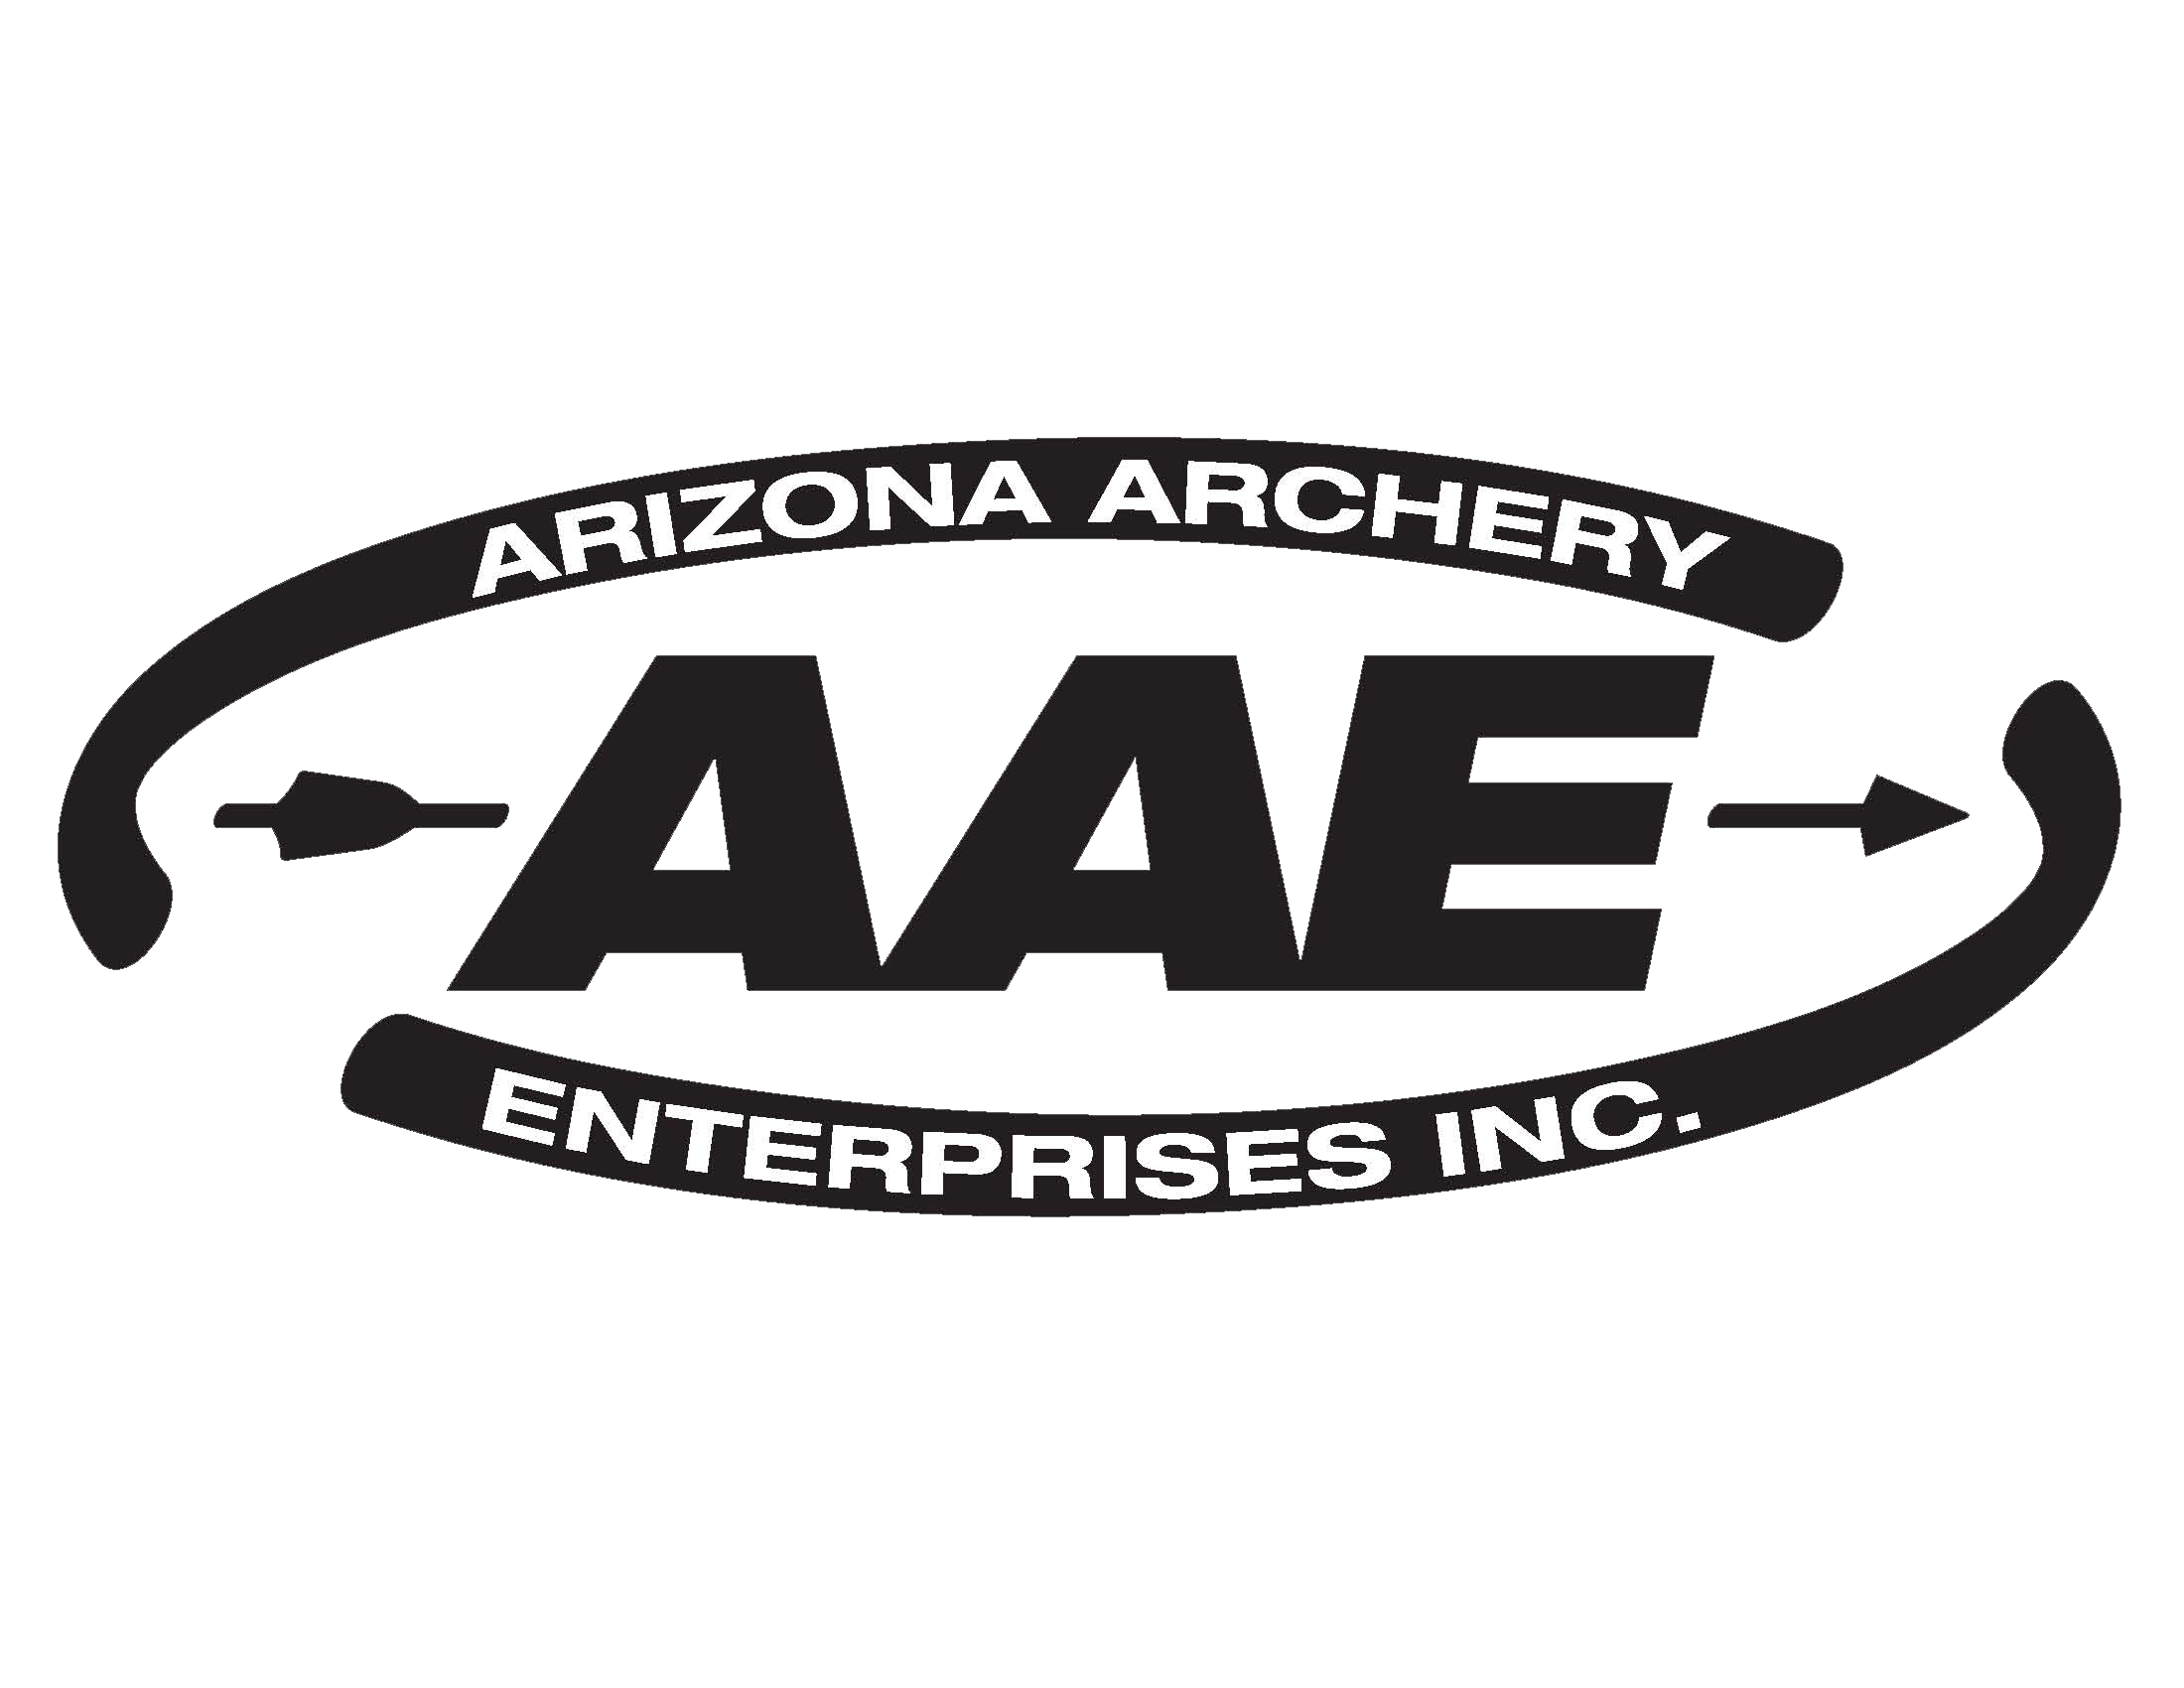 ARIZONA ARCHERY